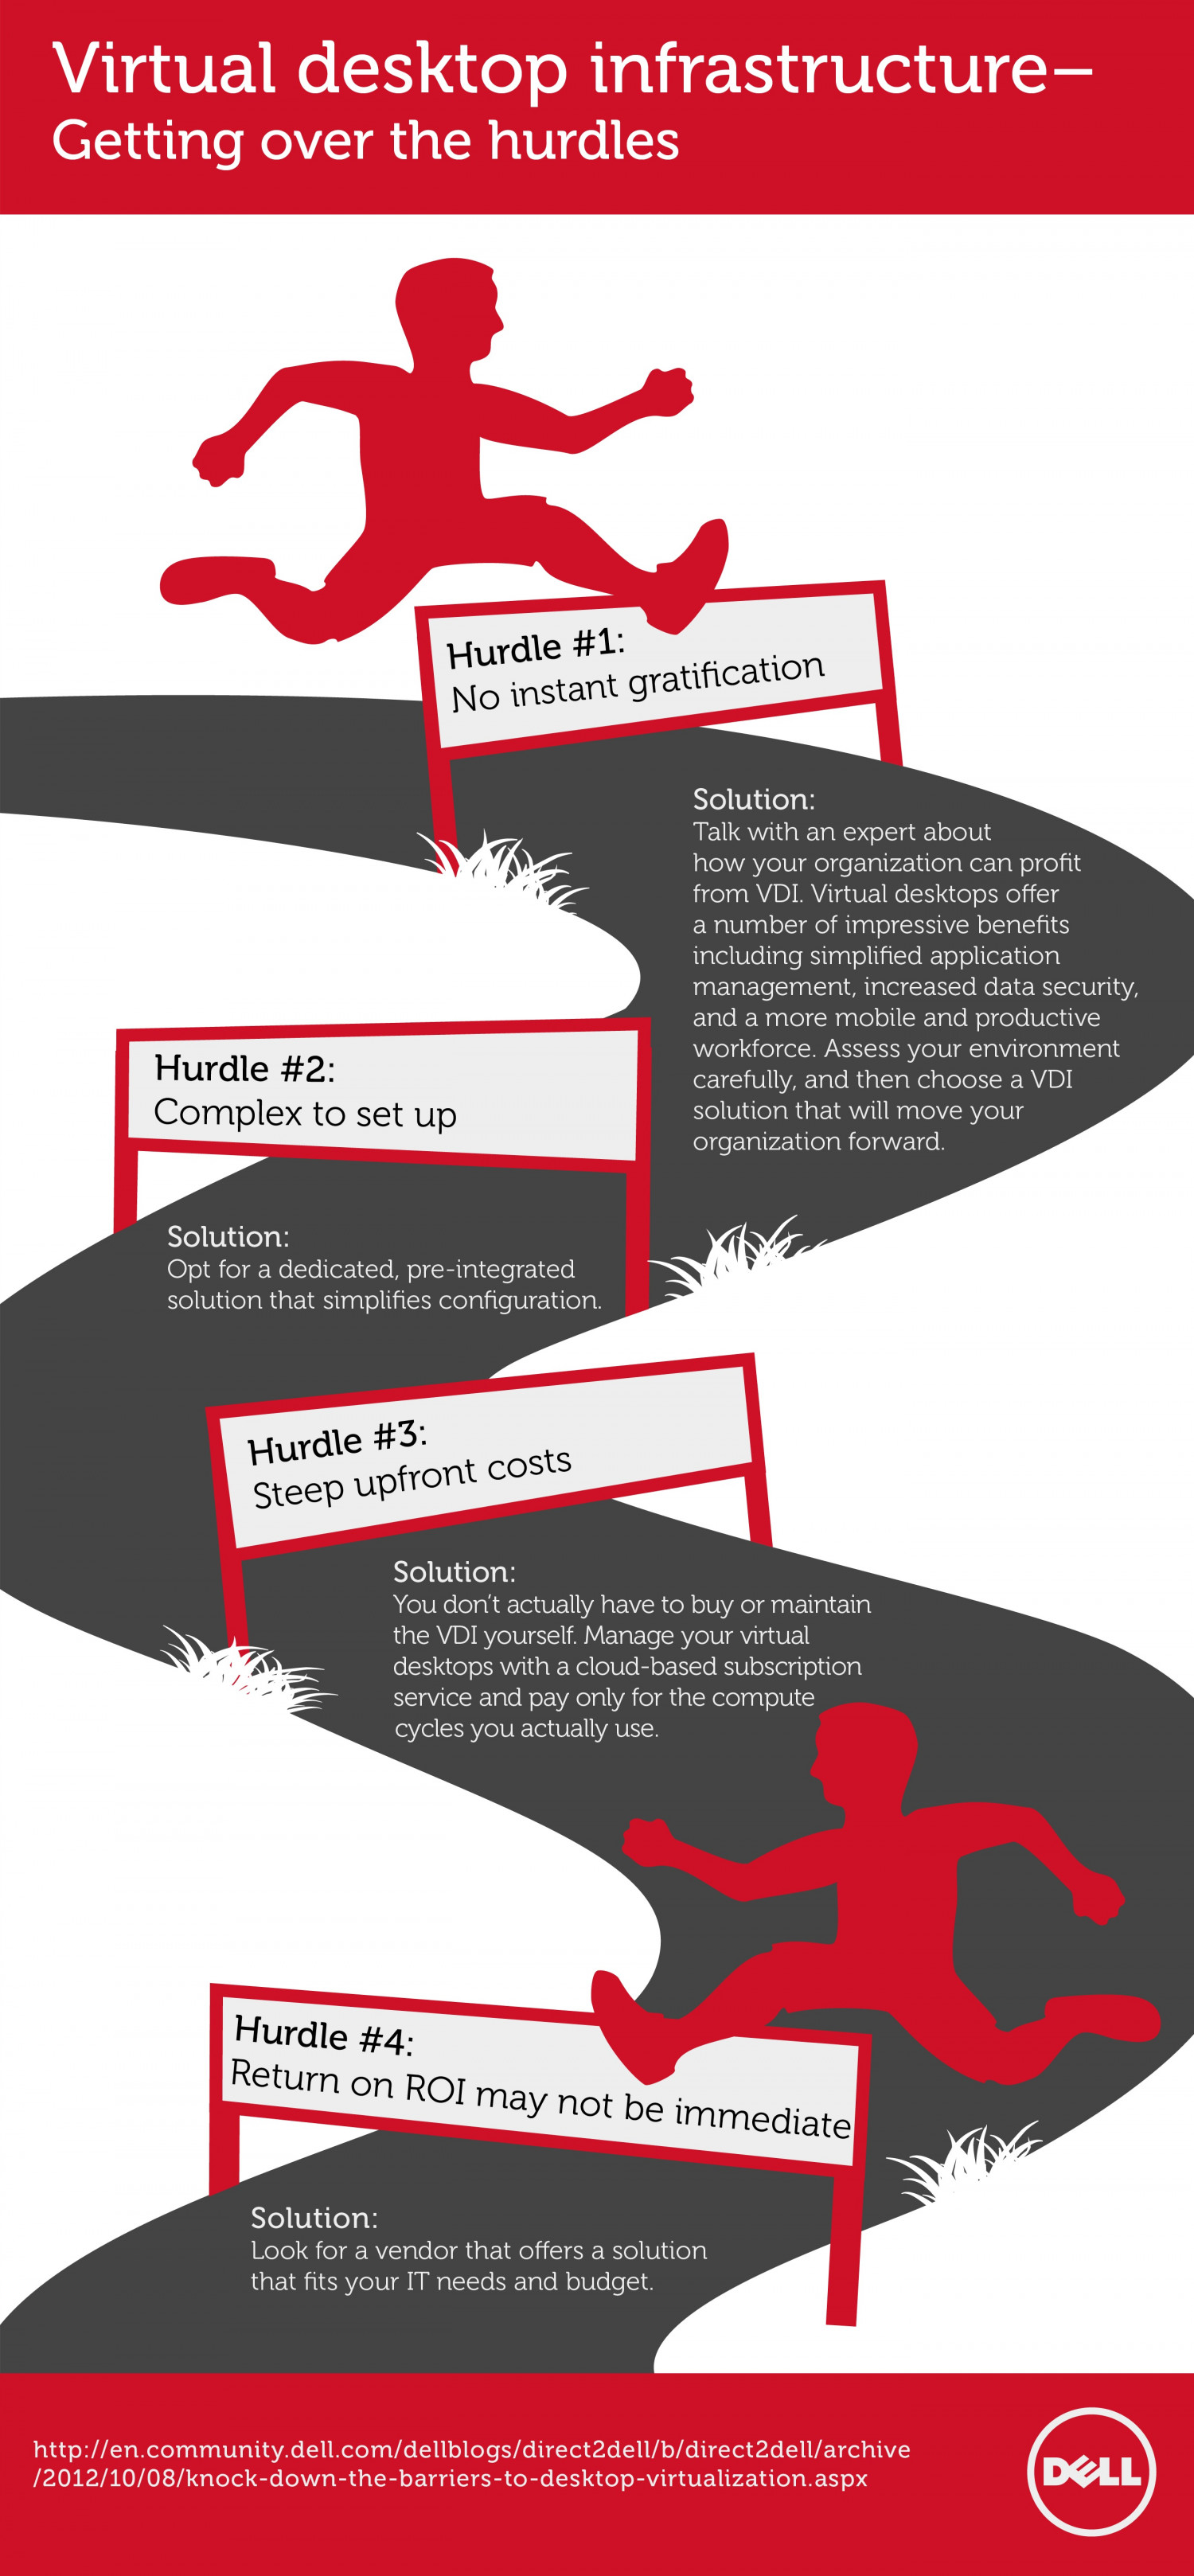 Virtual desktop infrastructure – Getting over the hurdles Infographic